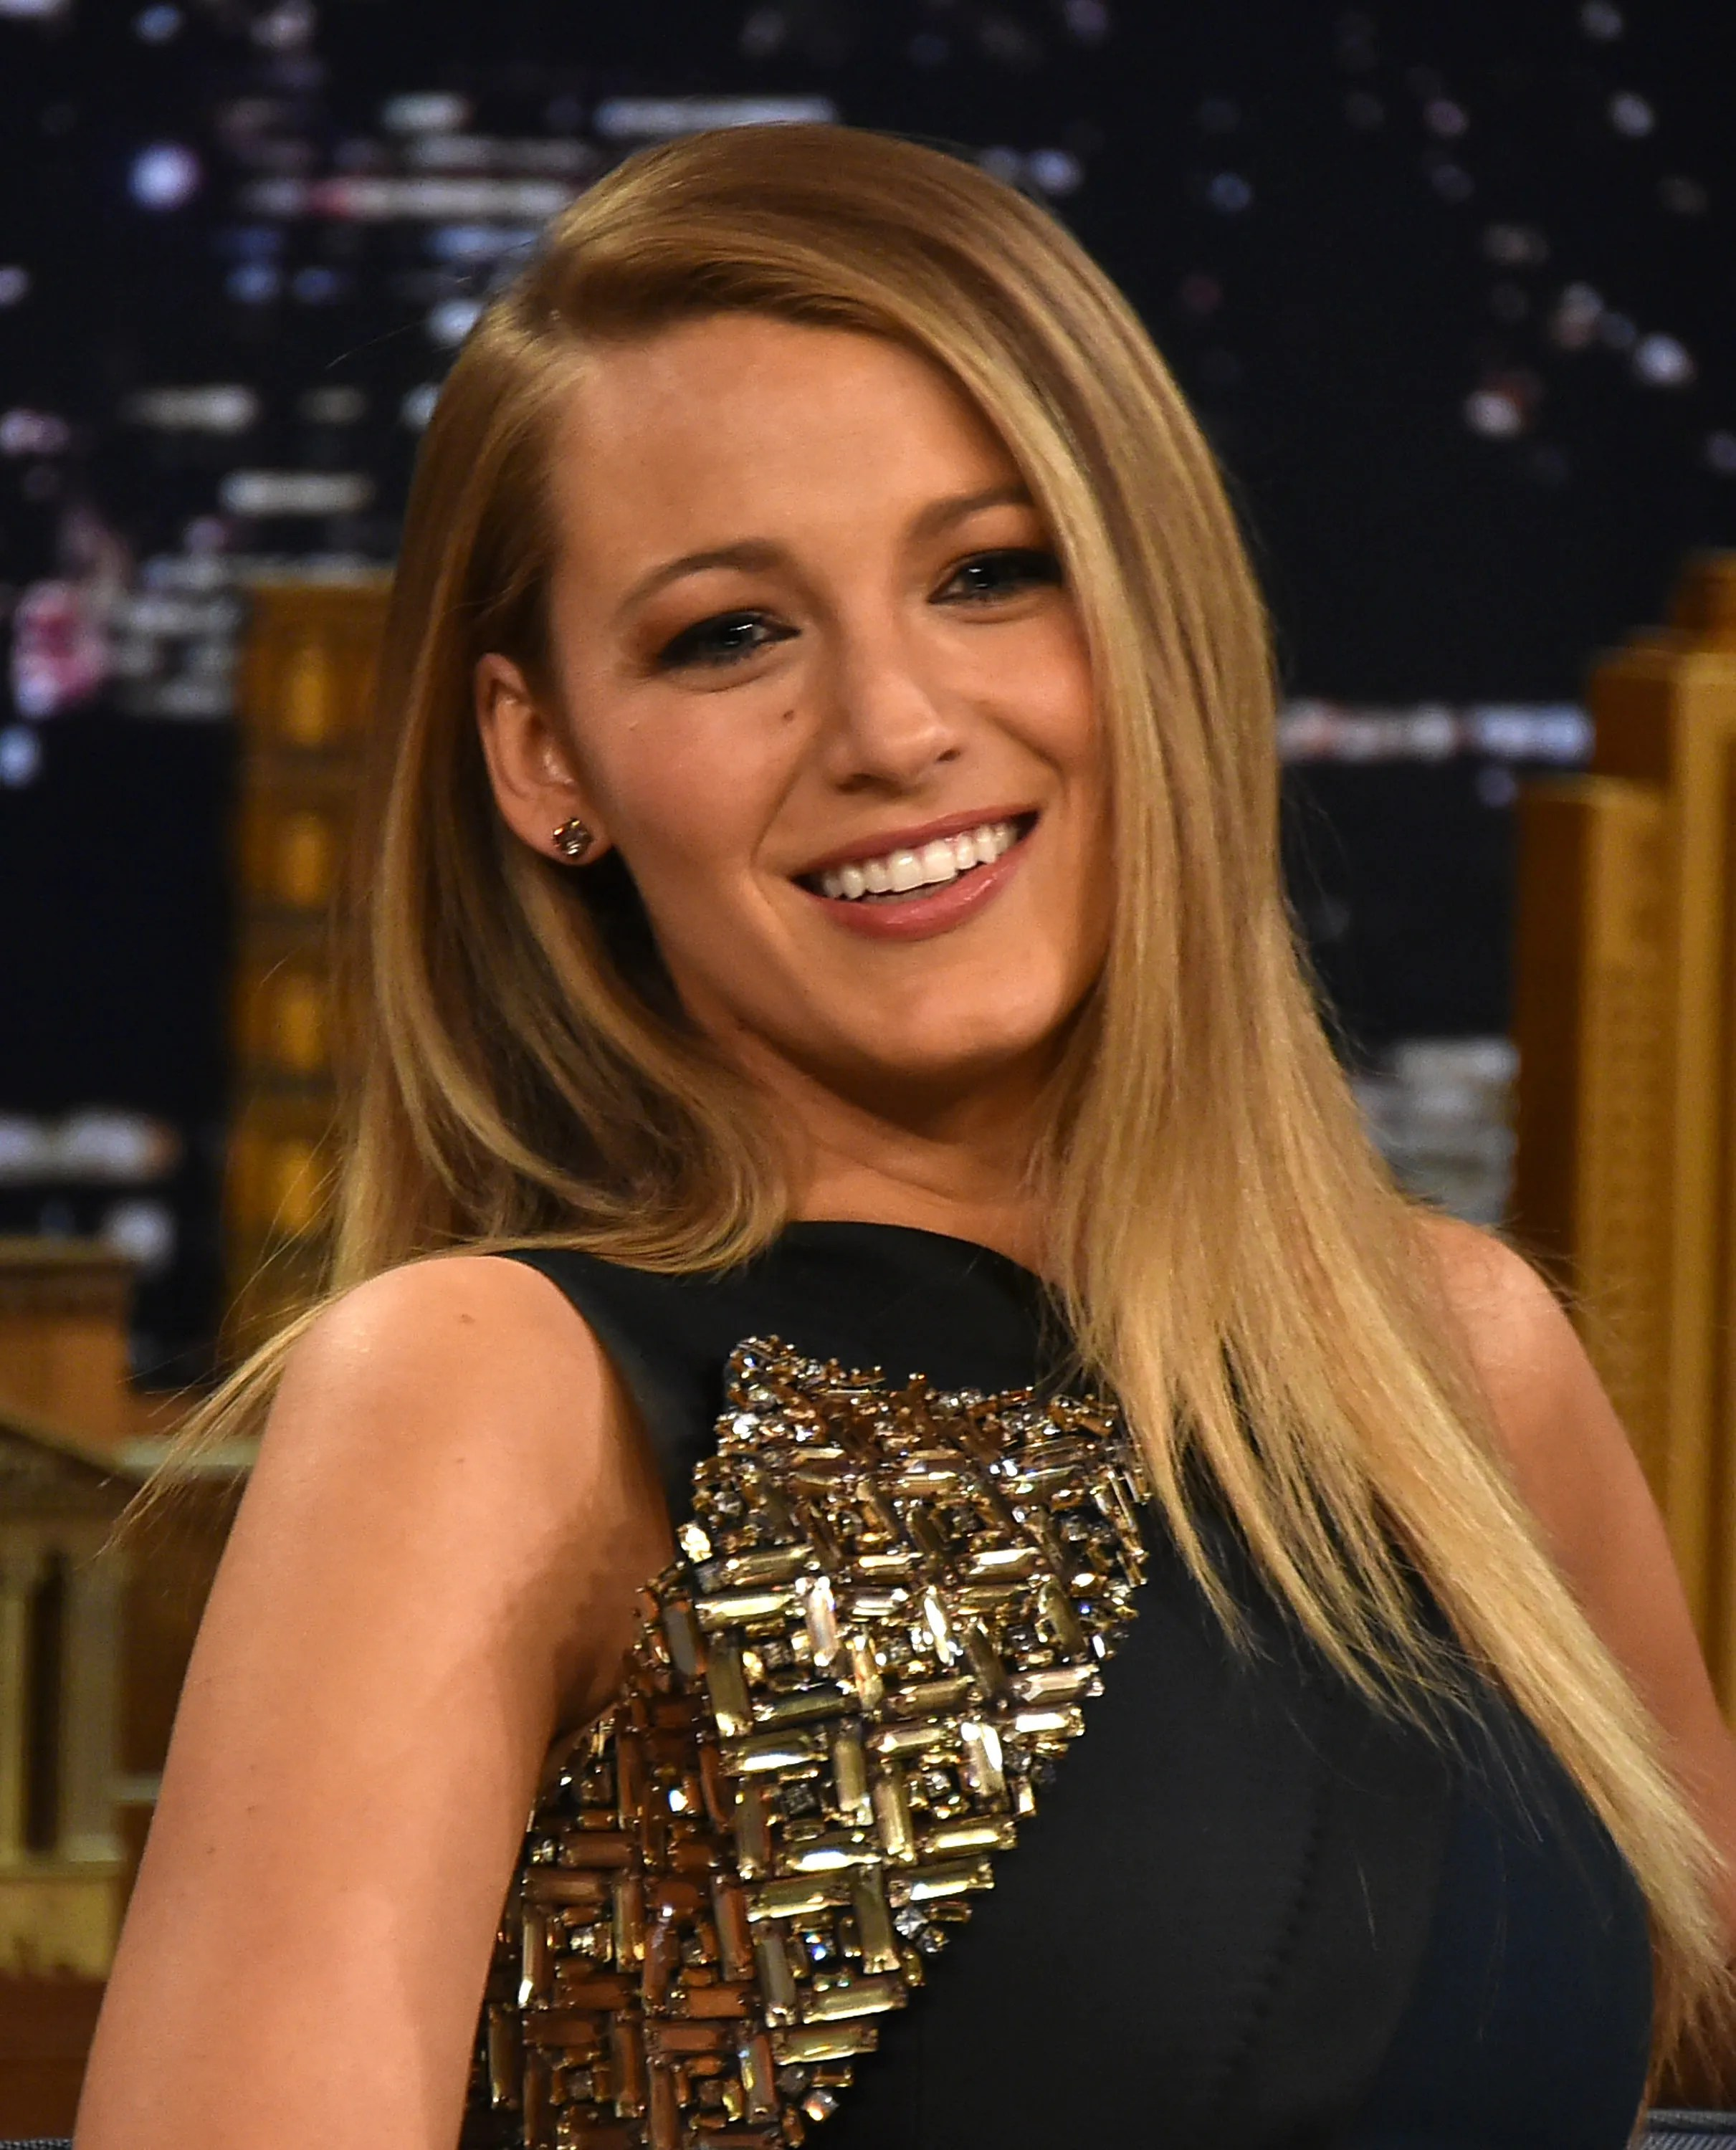 Blake Lively Just Wore the Coolest Knotted Braid to Go Hiking